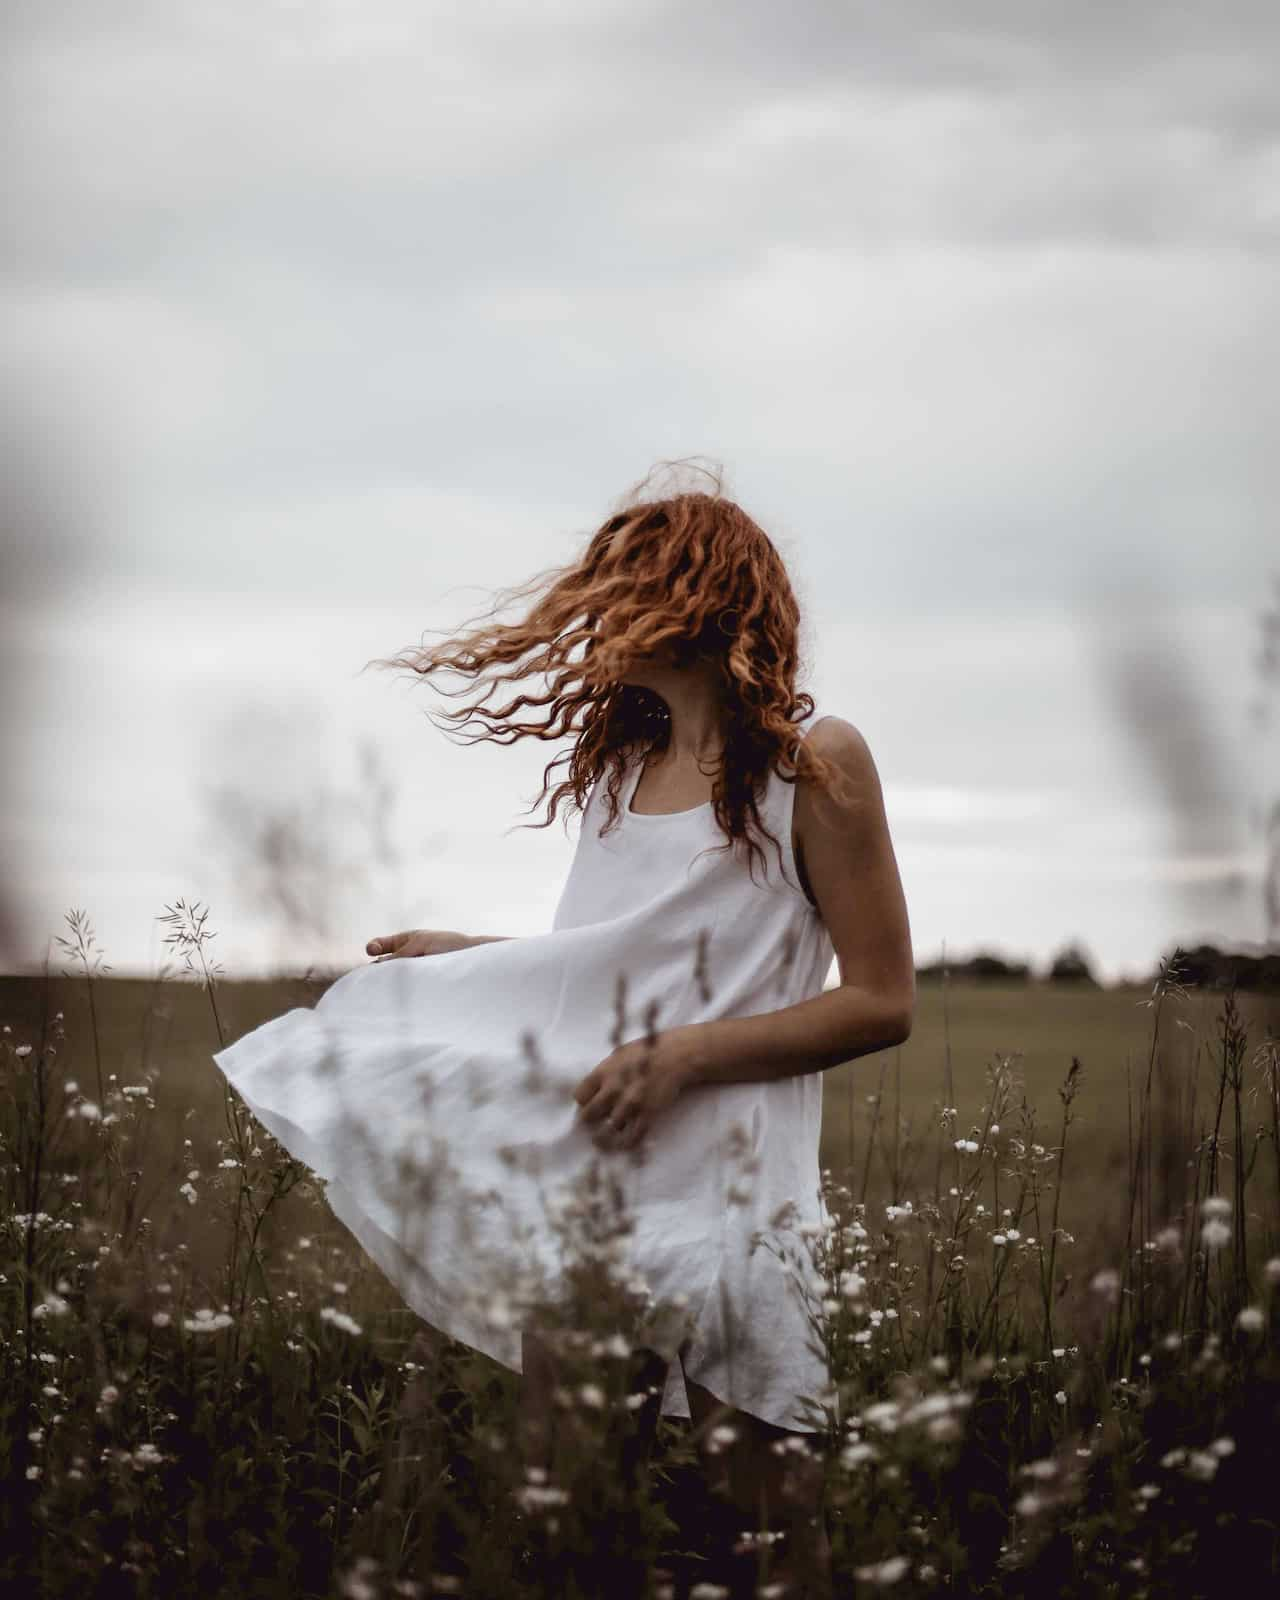 Woman wearing white linen dress in a field